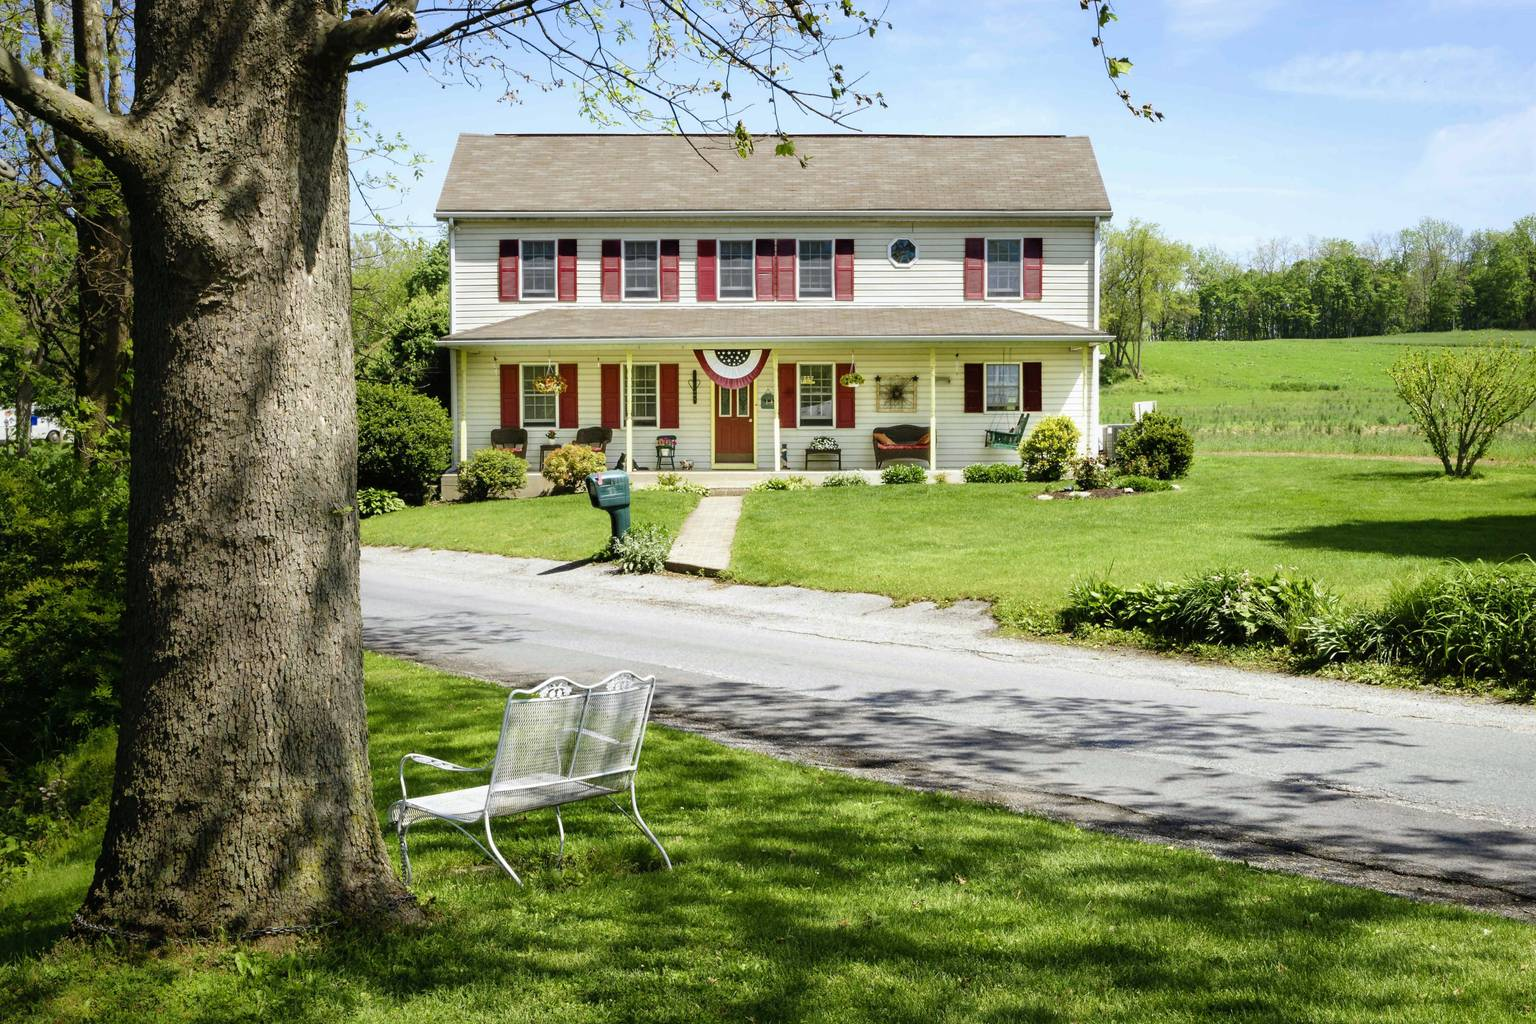 A large lawn in front of a house at Red Cardinal Bed & Breakfast.